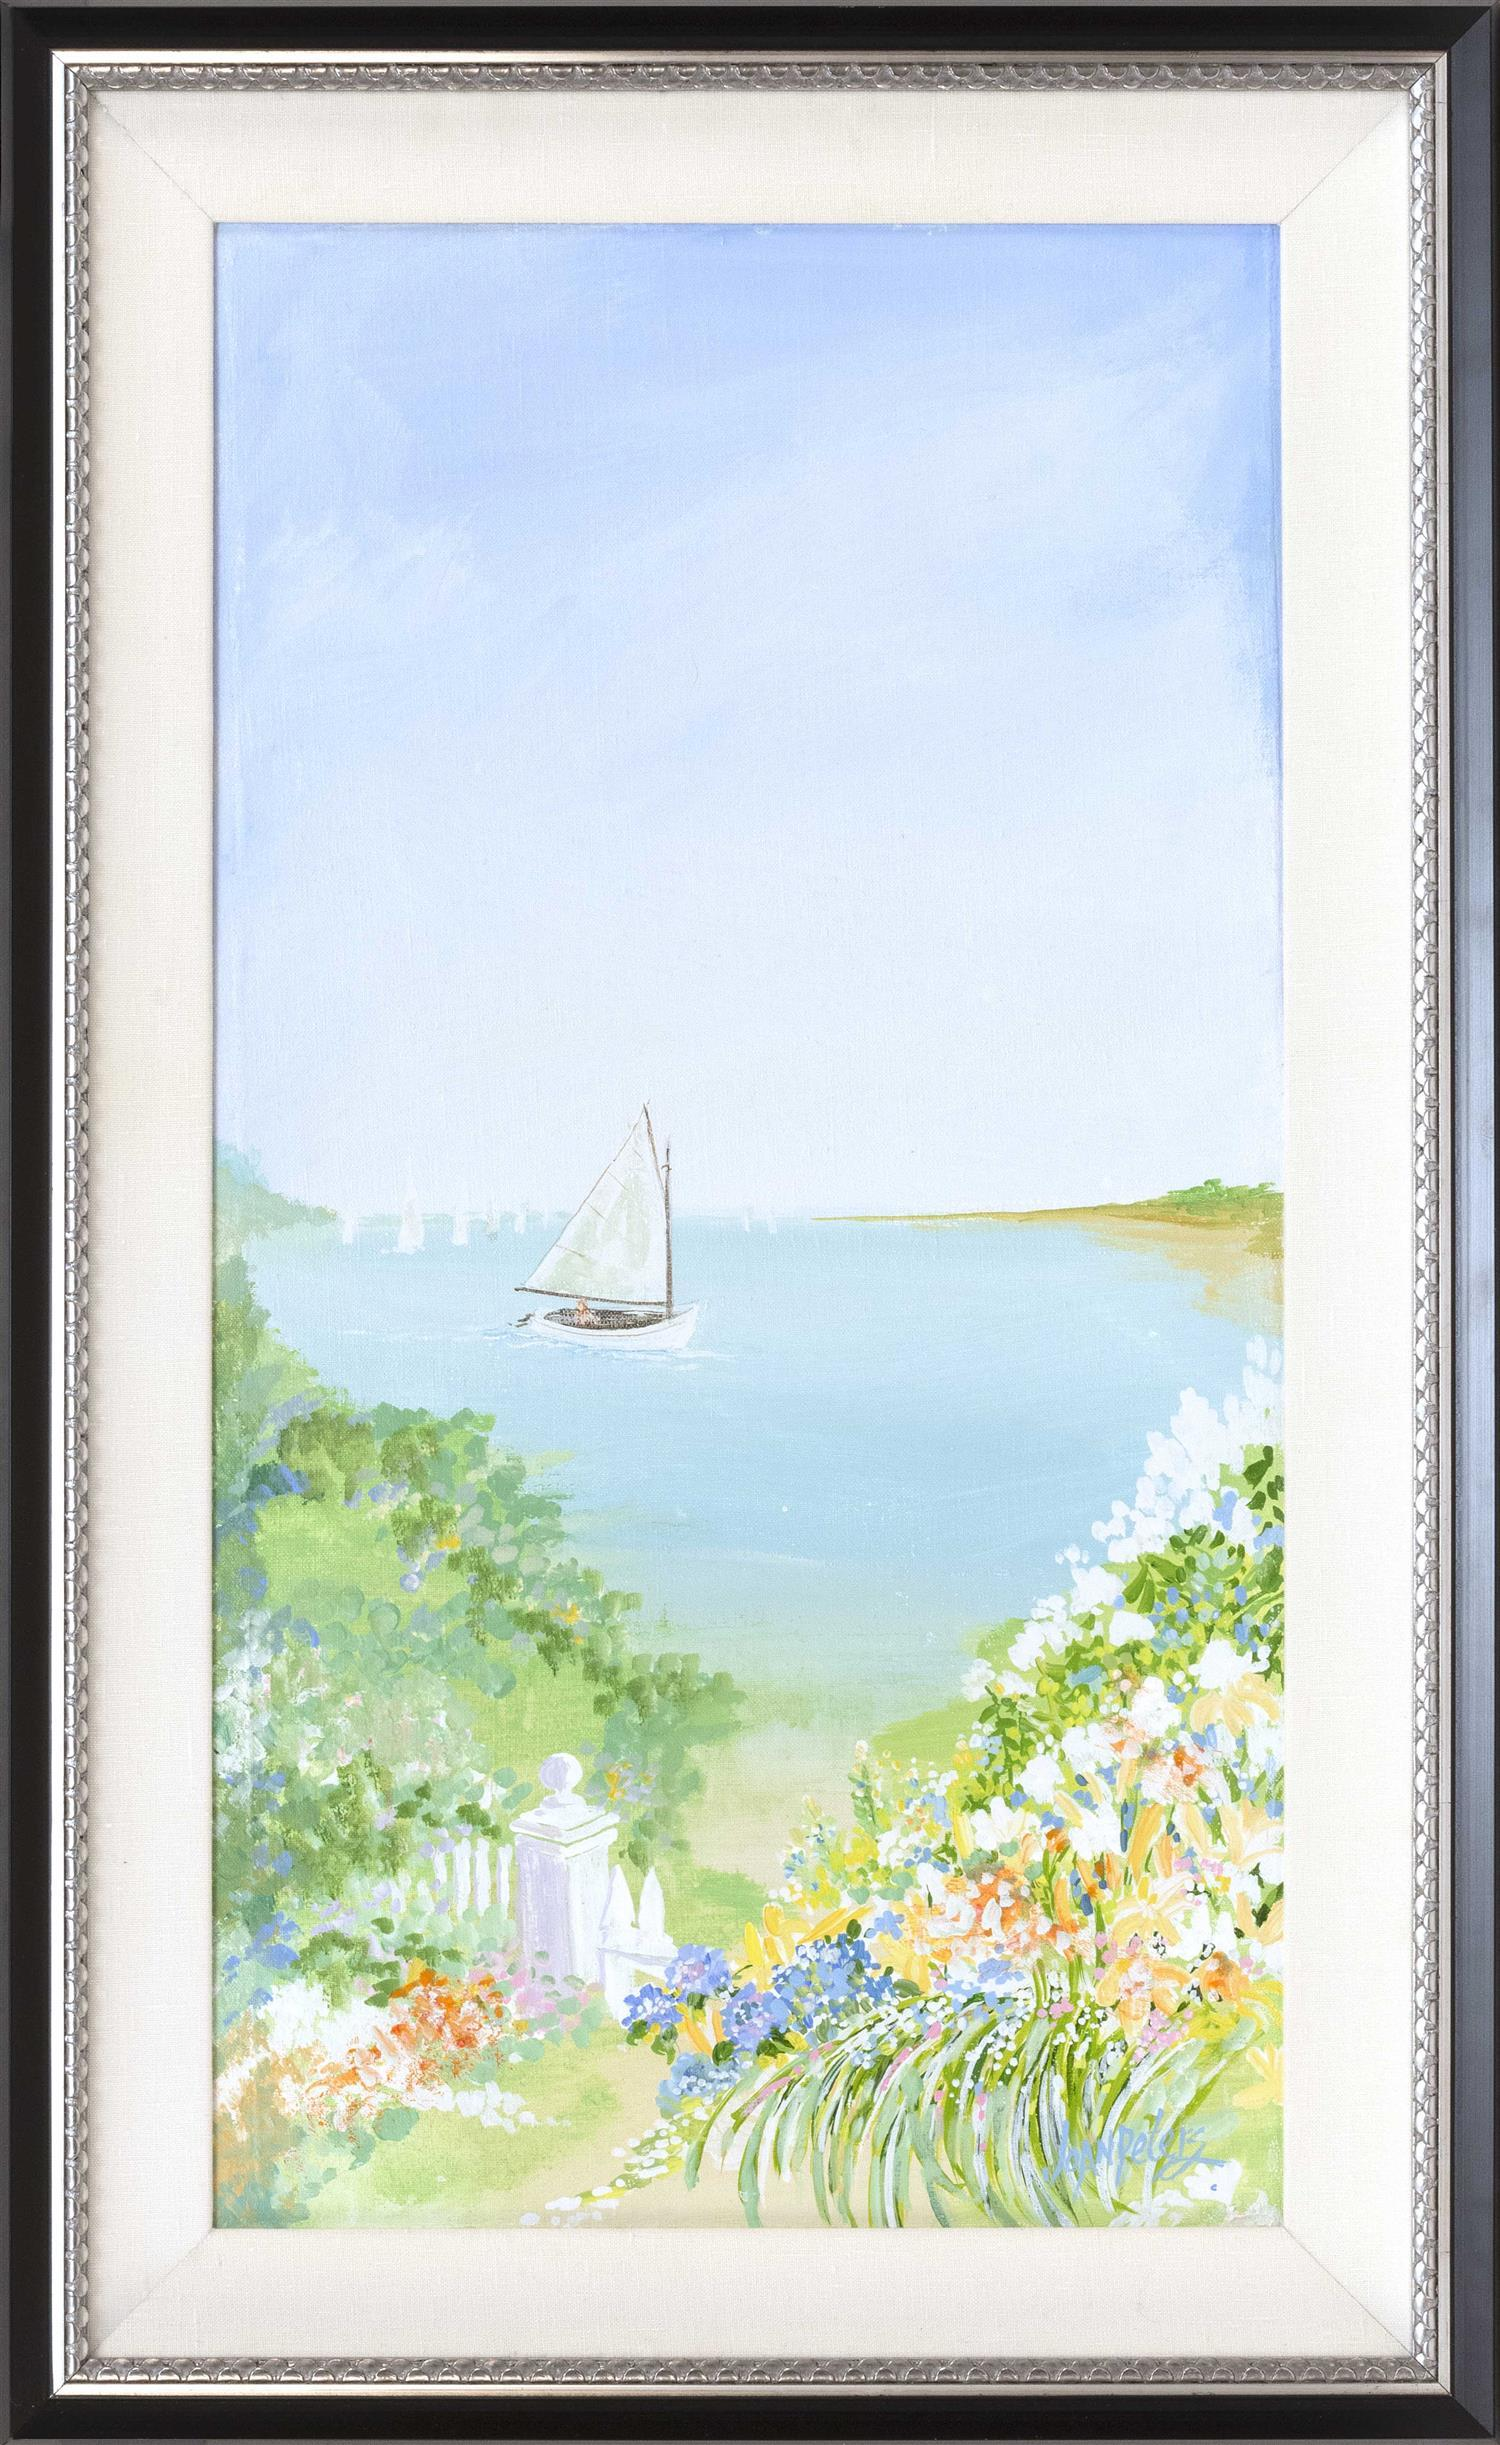 """JOAN PETERS, Cape Cod, Contemporary, """"Summer Sail in Cotuit""""., Acrylic on linen mounted on board, 27"""" x 14.5"""". Framed 32.5"""" x 20""""."""